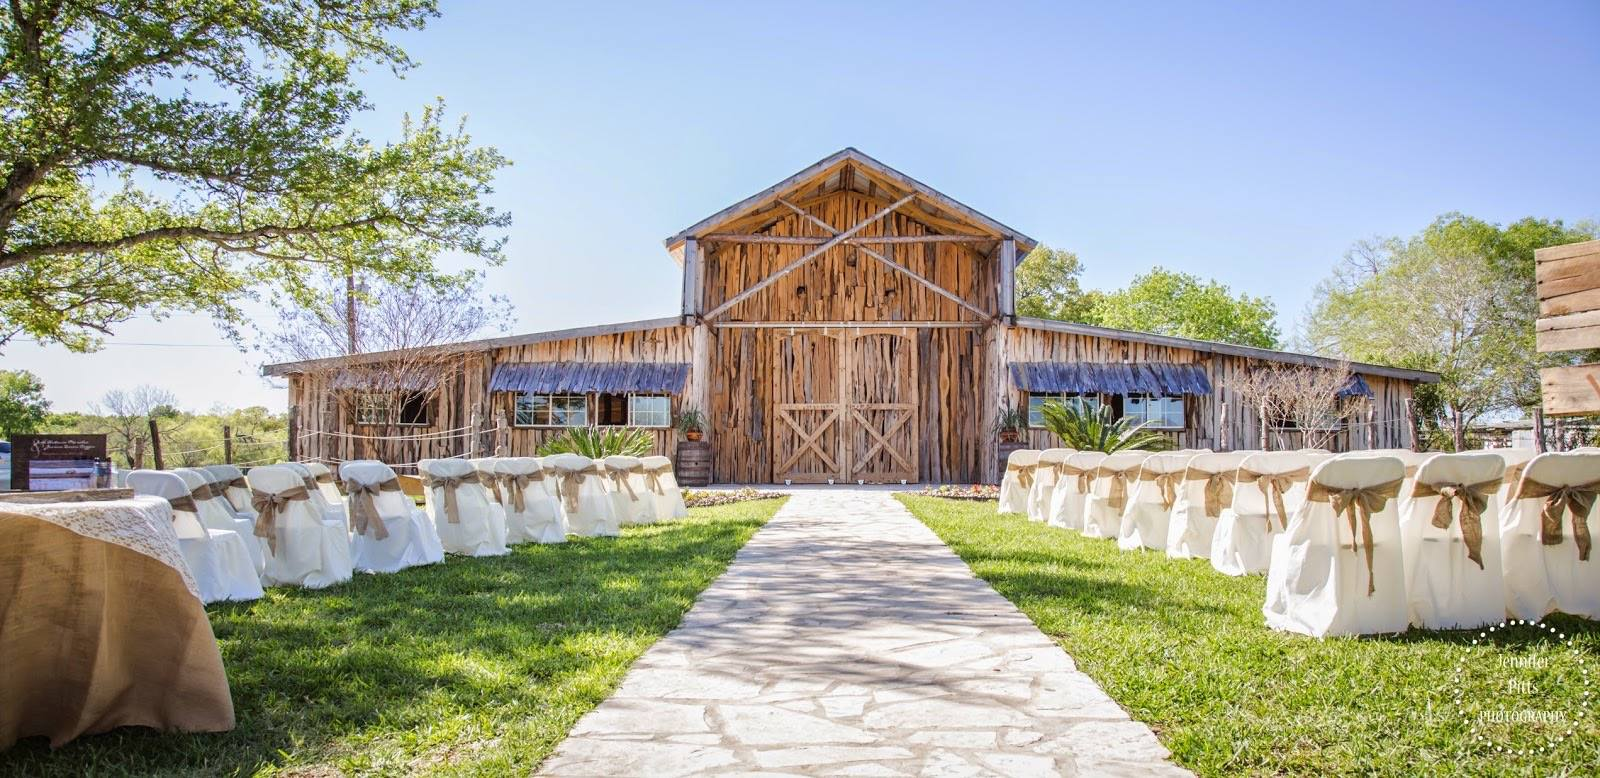 Rancho La Mission reviews | Venues & Event Spaces at 14047 Henze Rd - San Antonio TX